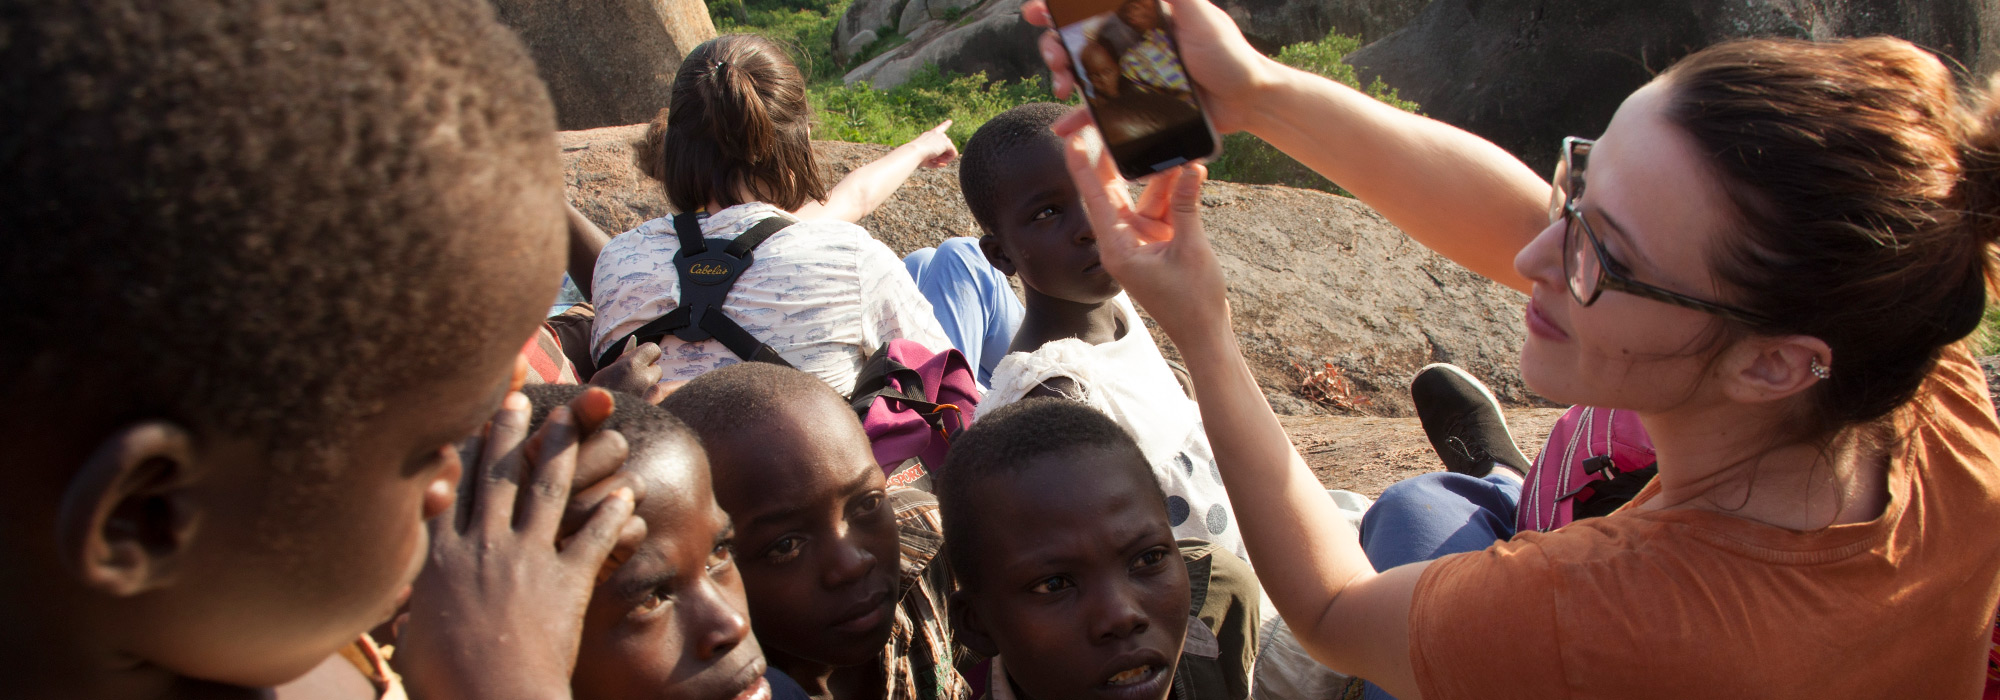 Pharmacy student Lauren Stacey shares photos with local children on a hike in Tanzania